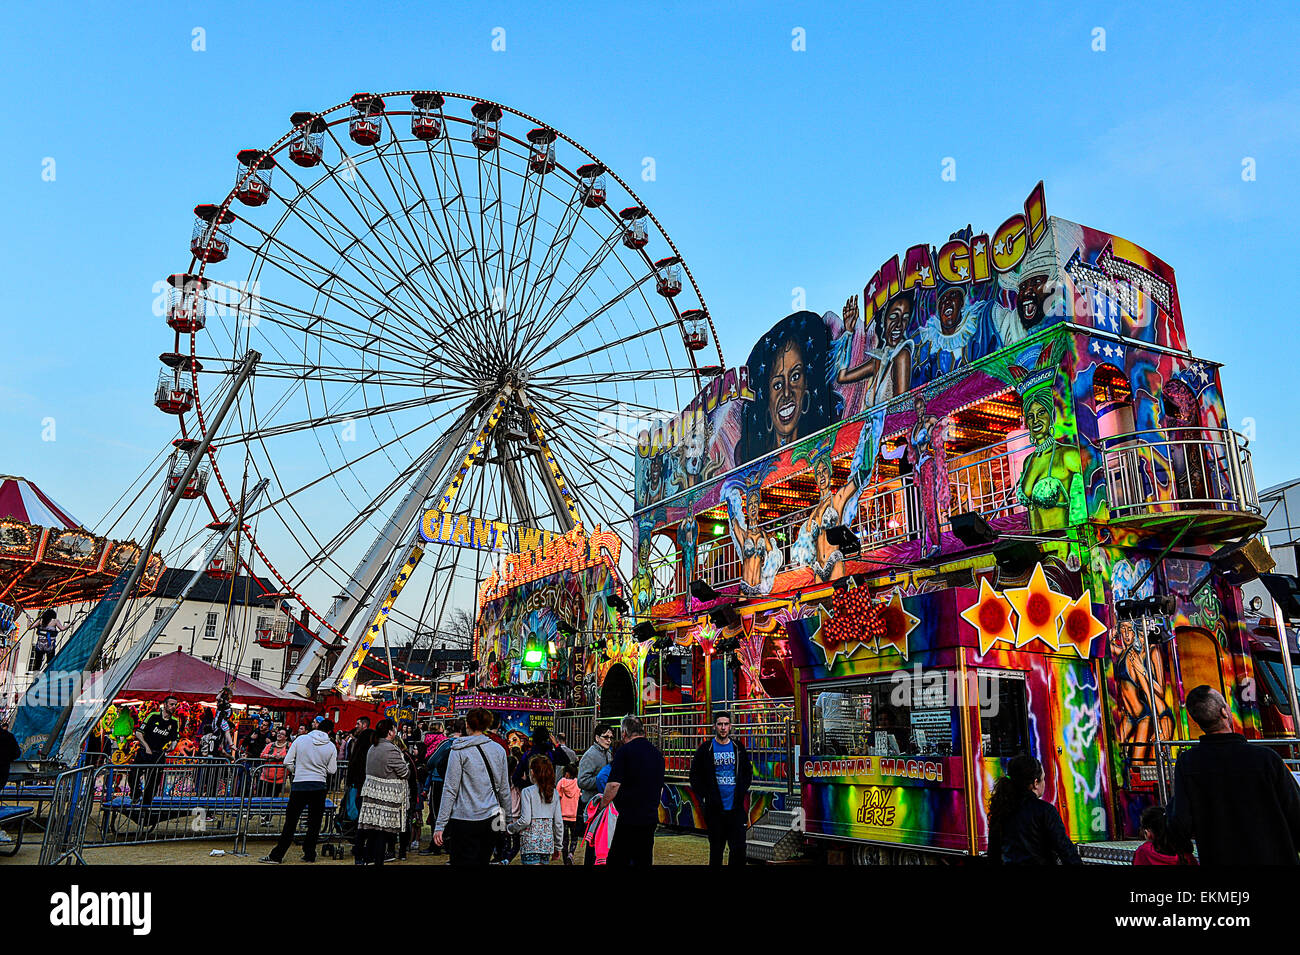 Cullens amusements in Ebrington Square, Londonderry, Derry, Northern Ireland. - Stock Image